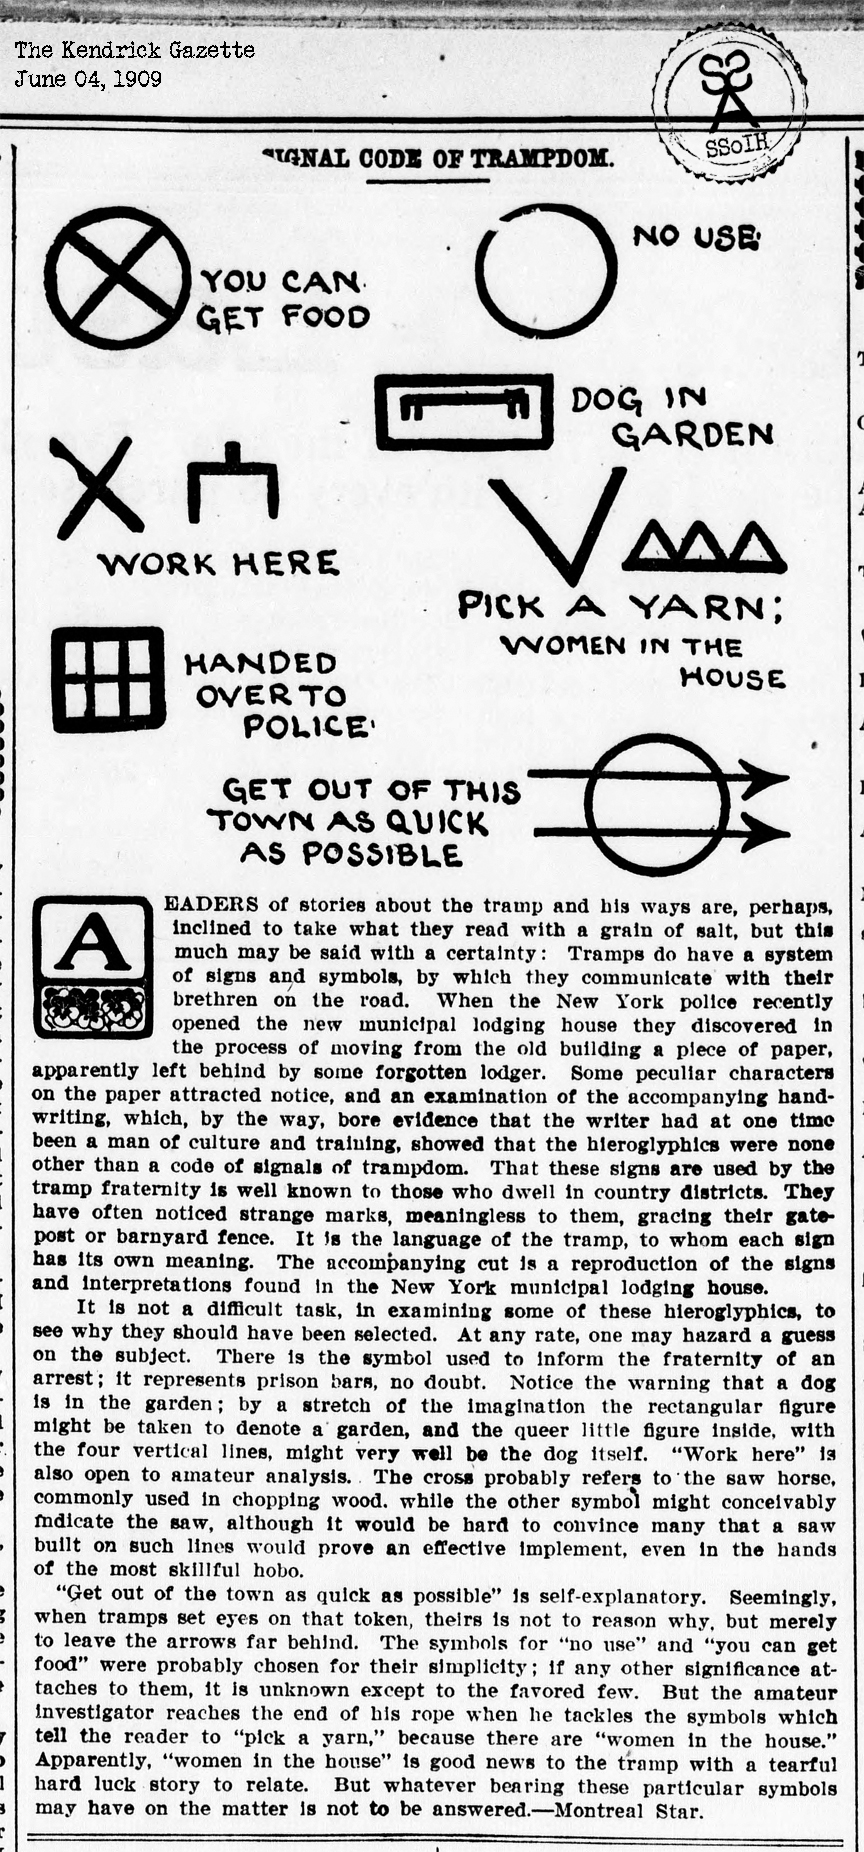 Ssoih history of hobo signs signal code of trampdom several codes discussed such as work here park a yarn women in the house dog in garden etc montreal star june 4 1909 buycottarizona Choice Image